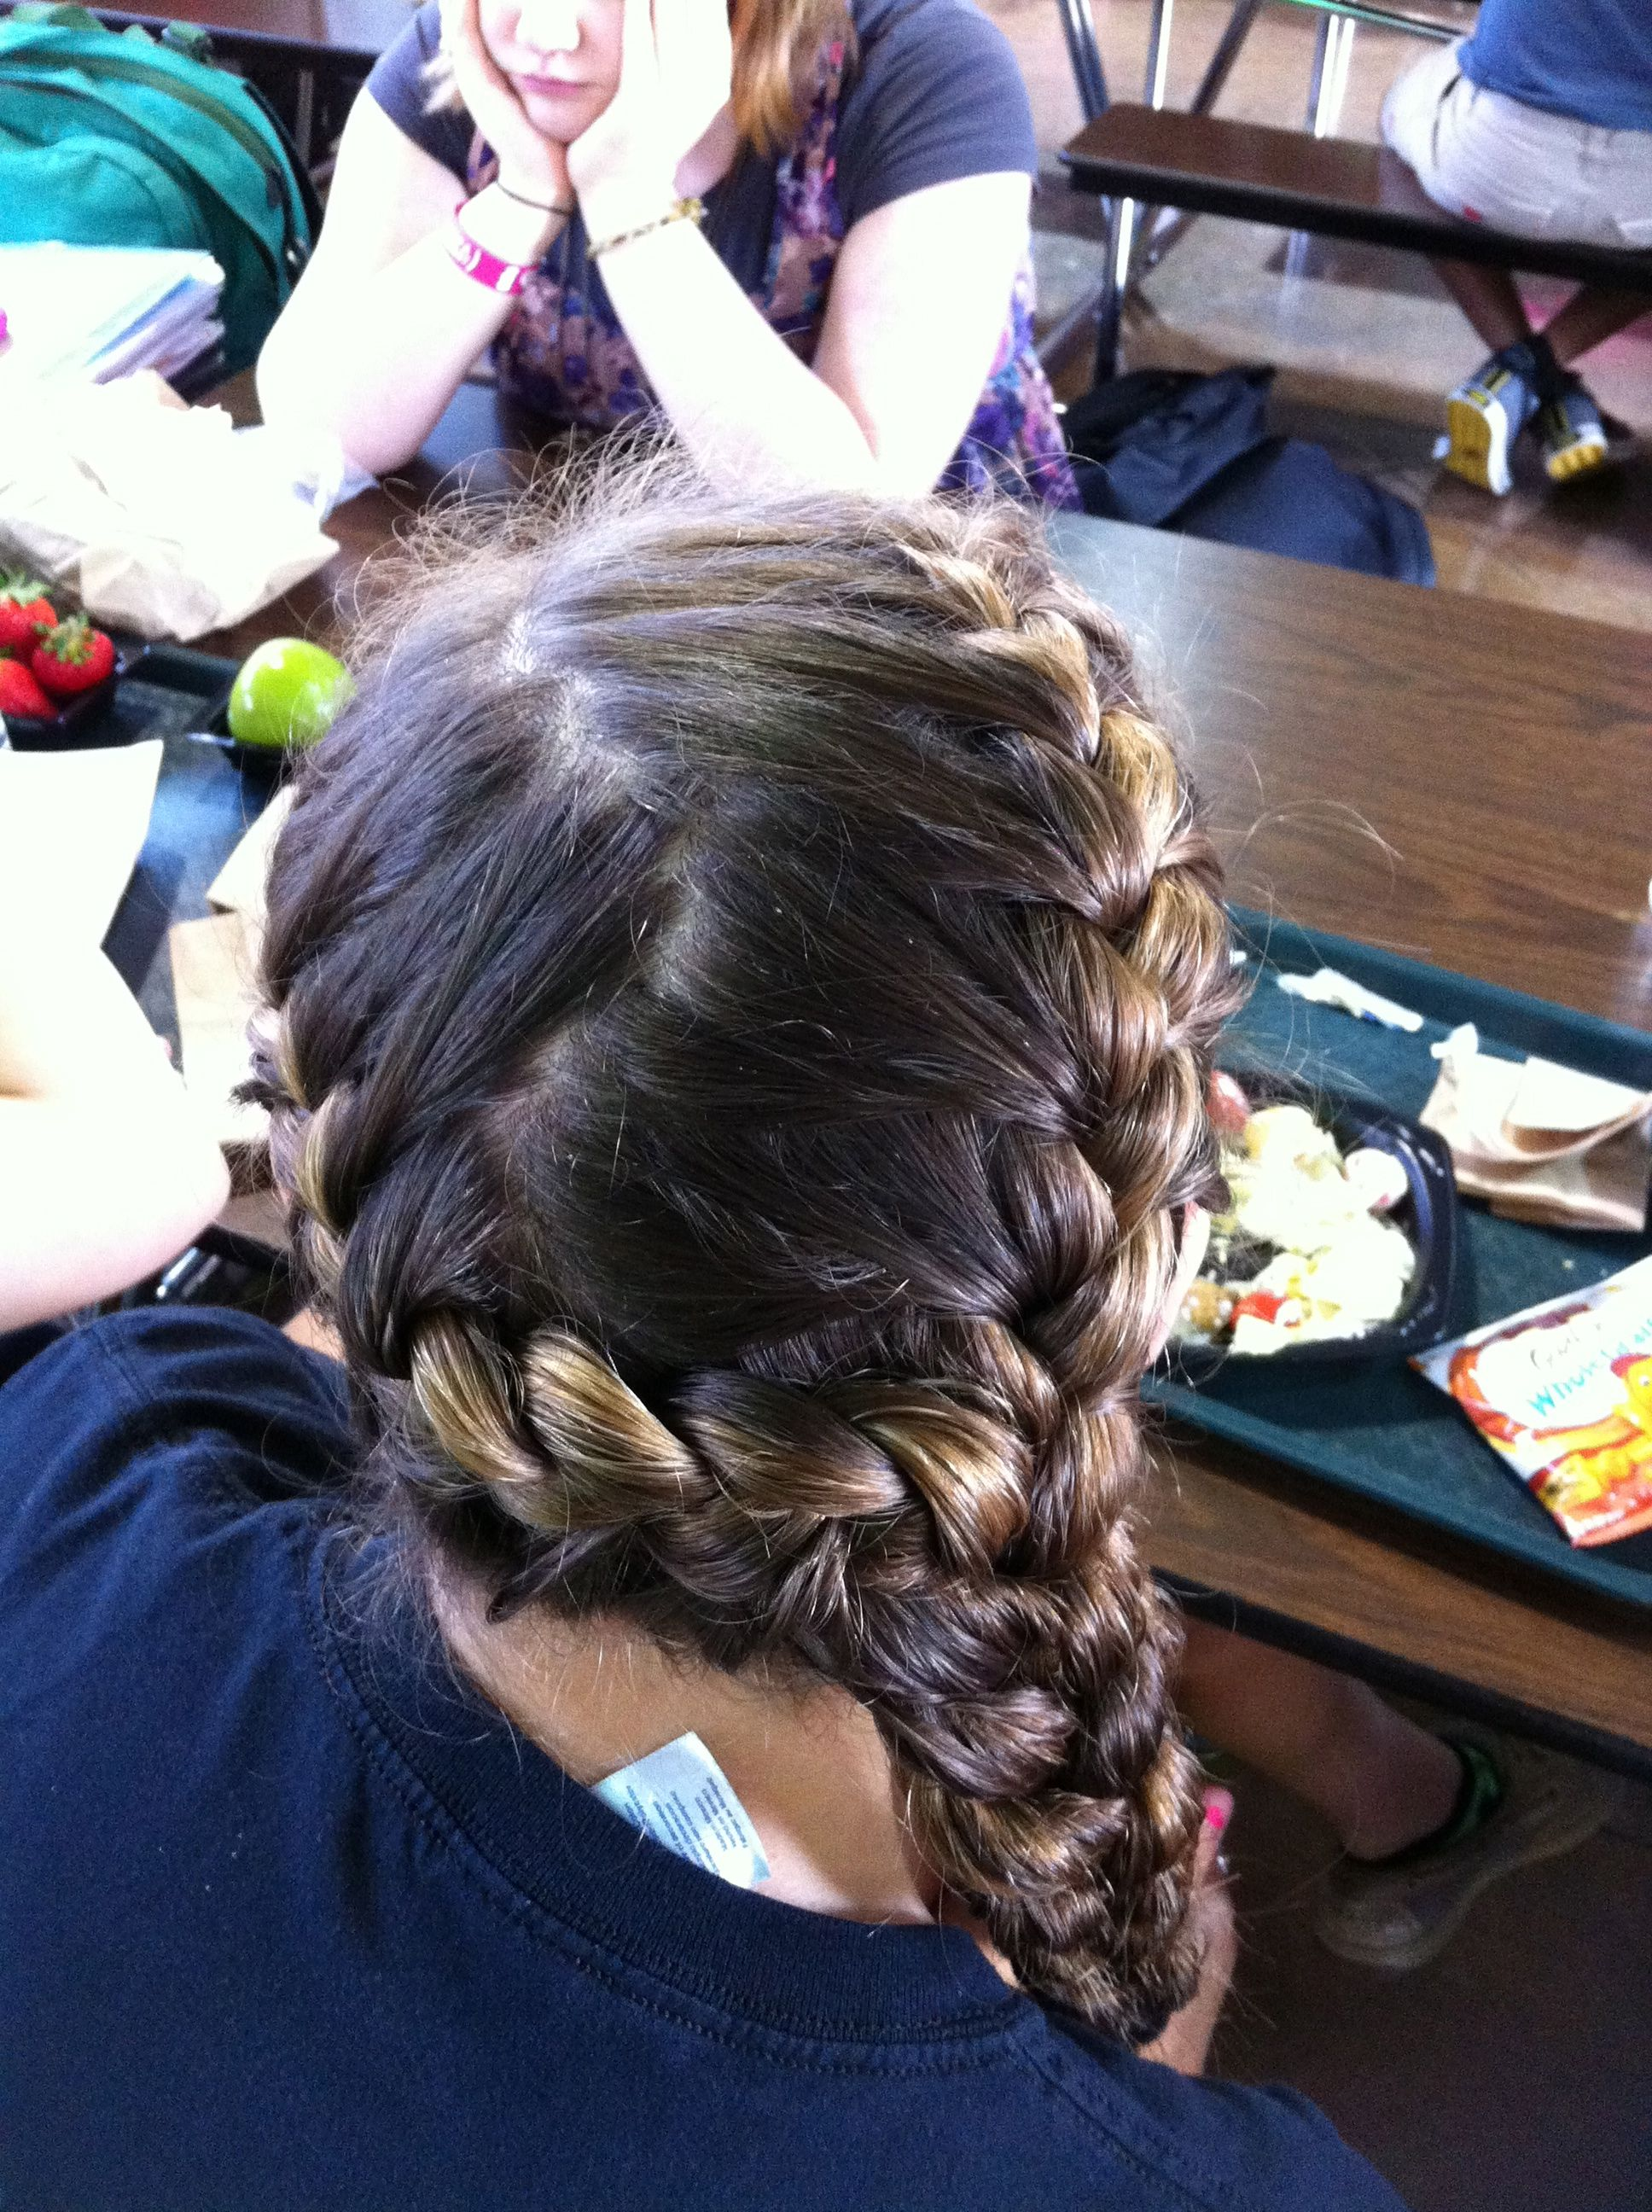 Two French Braids Into One Side French Braid Great For Soccer Girls Created By Megan Borzych Soccer Hair Side French Braids Hair Styles